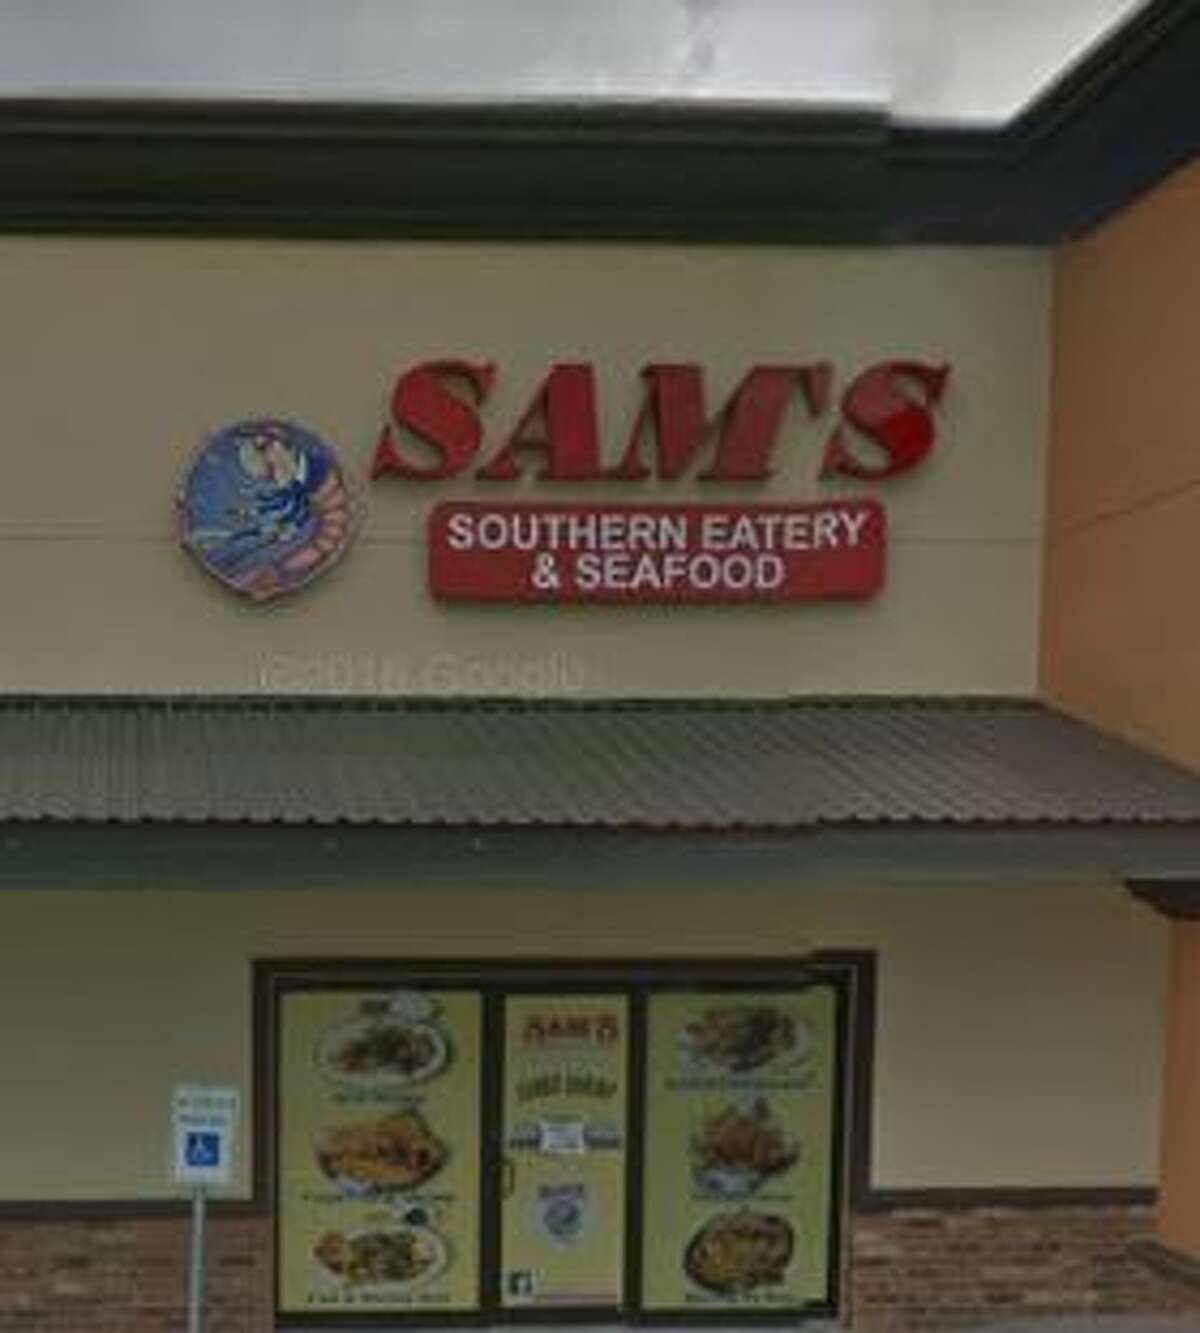 Sam's Southern Eatery 2949 College Score: 69 Violations: No sanitary bucket, employees did not wash hands before putting on gloves, no paper towels at sinks, dirty rusty shelves, employees did not wear hair restraints, multiple personal items in prep area, dirty floors and vent hoods.